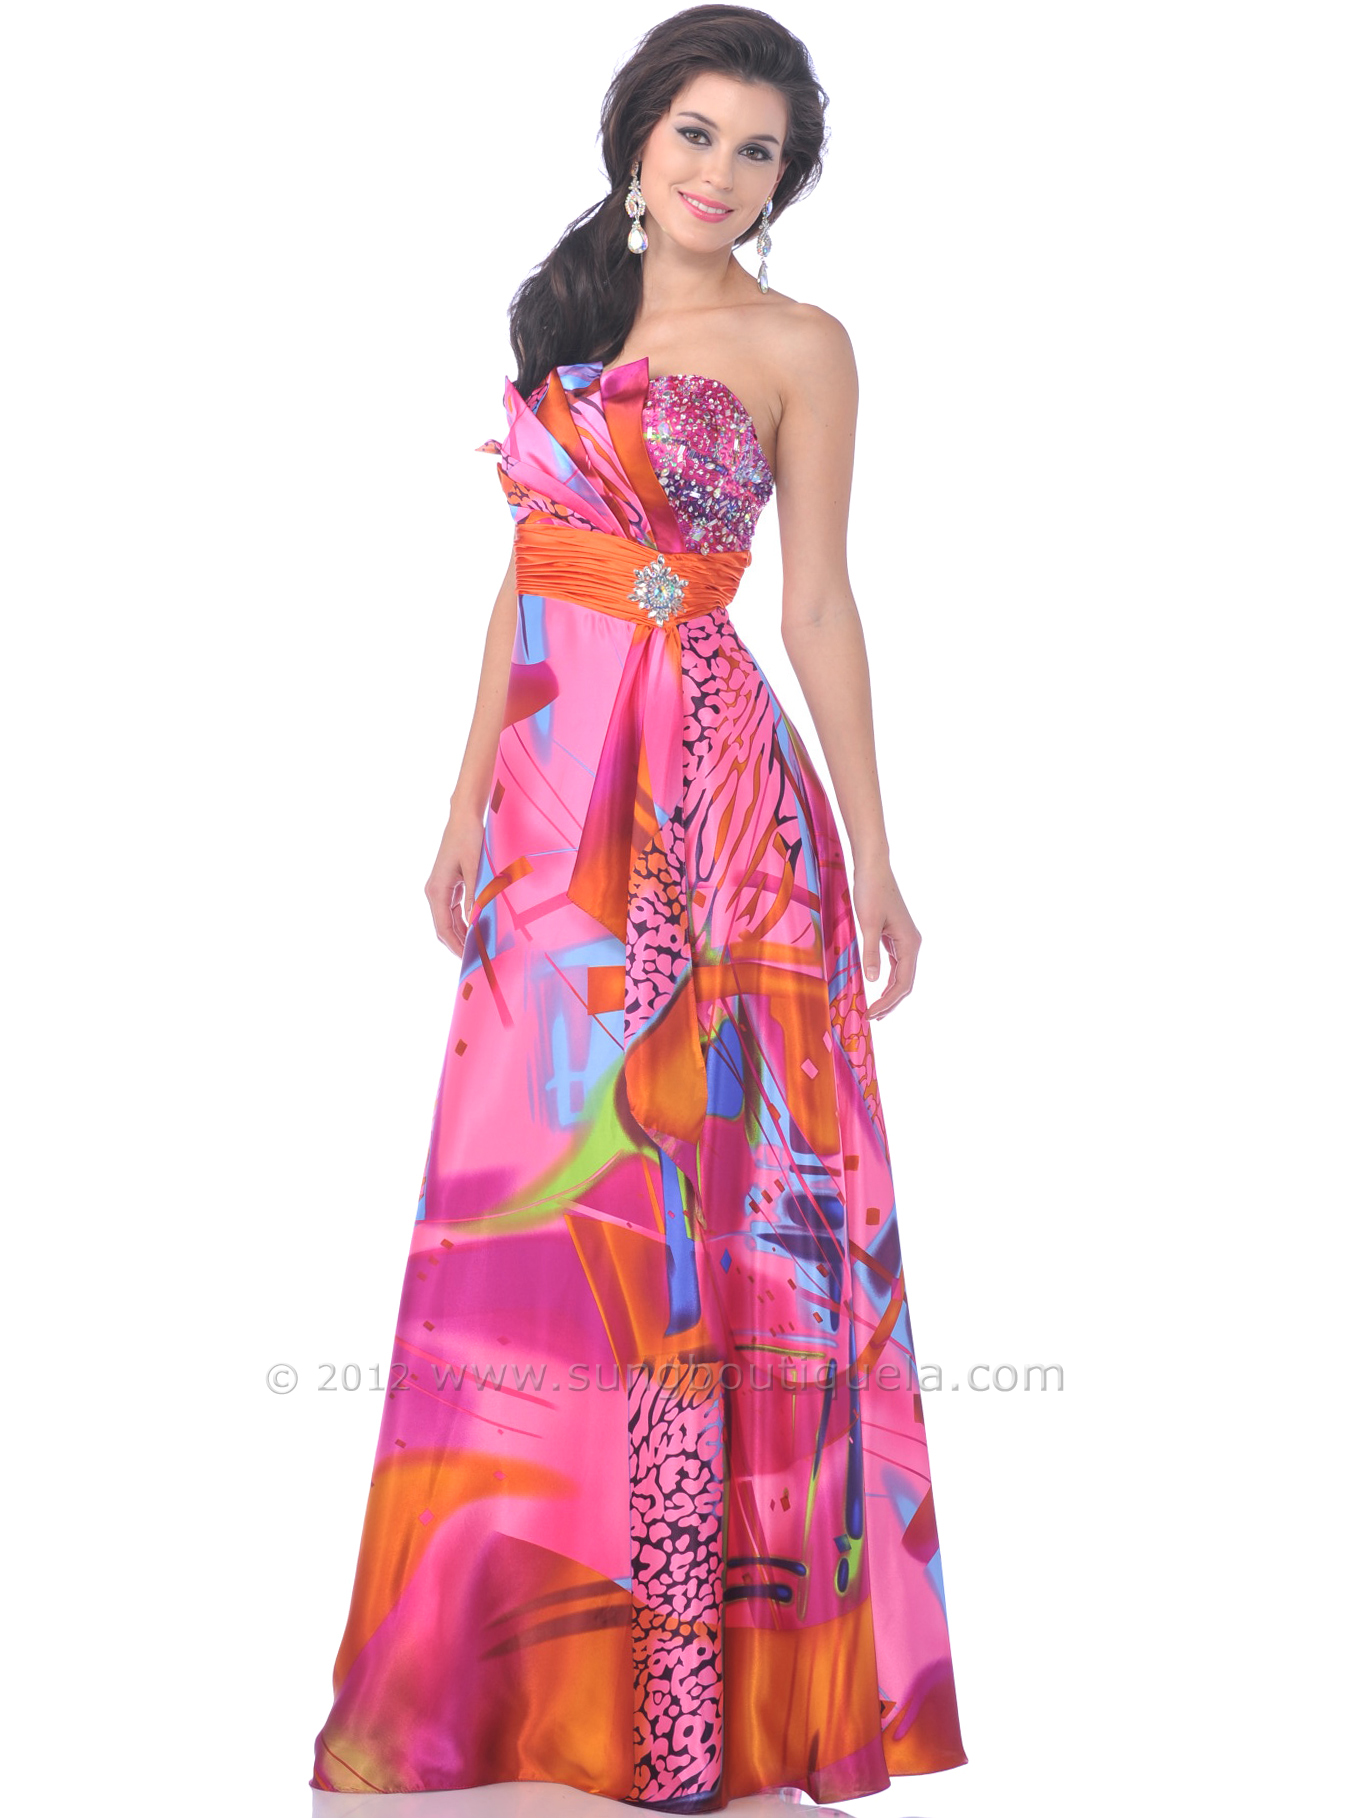 Hot Pink Strapless Print Prom Dress | Sung Boutique L.A.